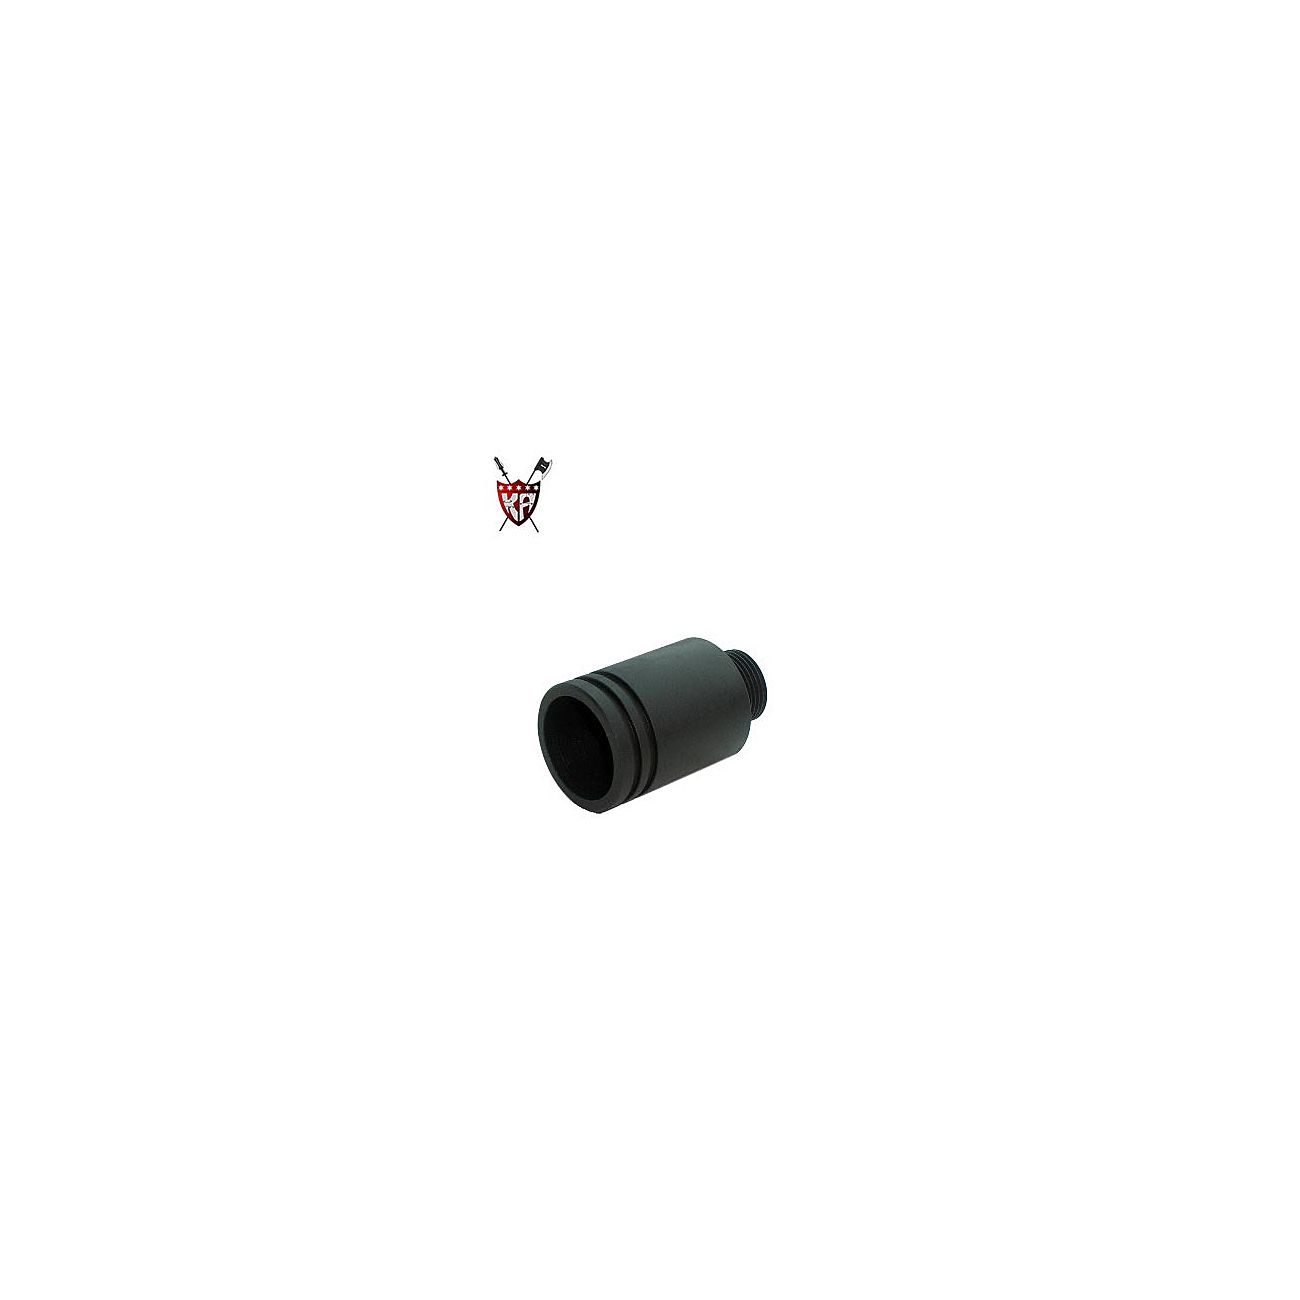 King Arms Silencer Adapter f. TM G36C 14mm- 0